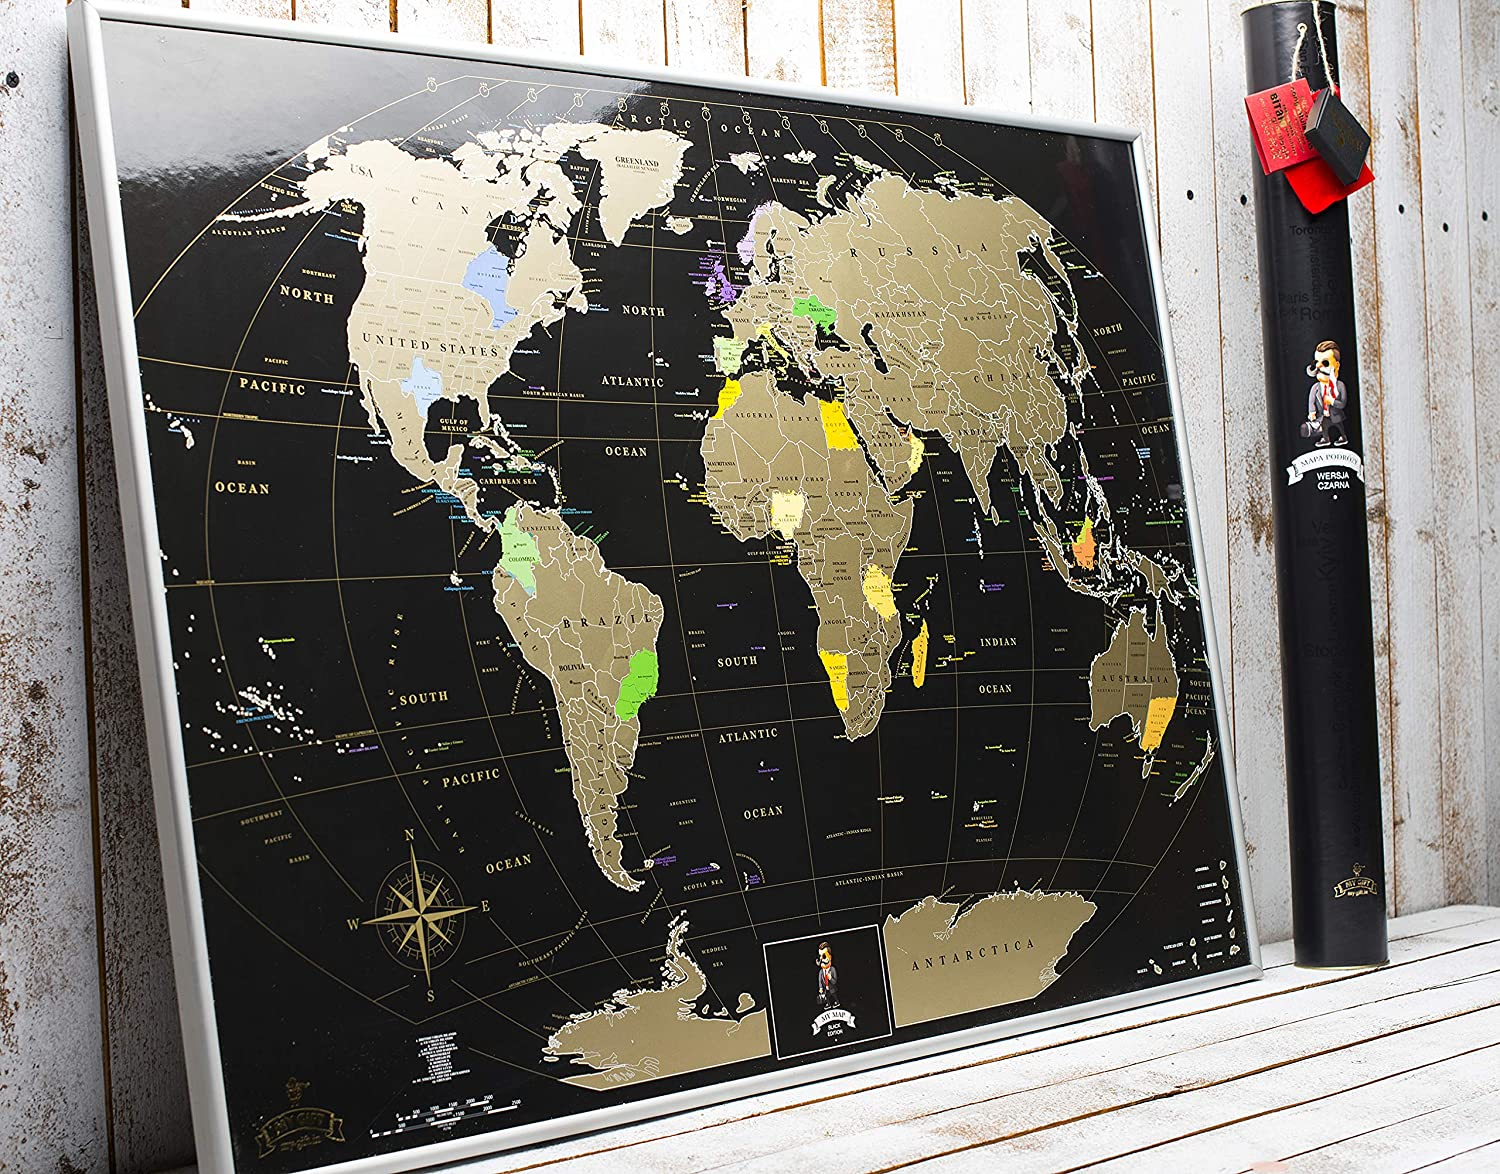 Scratch off World map Large map 88*63cm Coffee Edition by MyMap with divided USA Canada map States Birthday Anniversary Idea  Travel map Push pin map